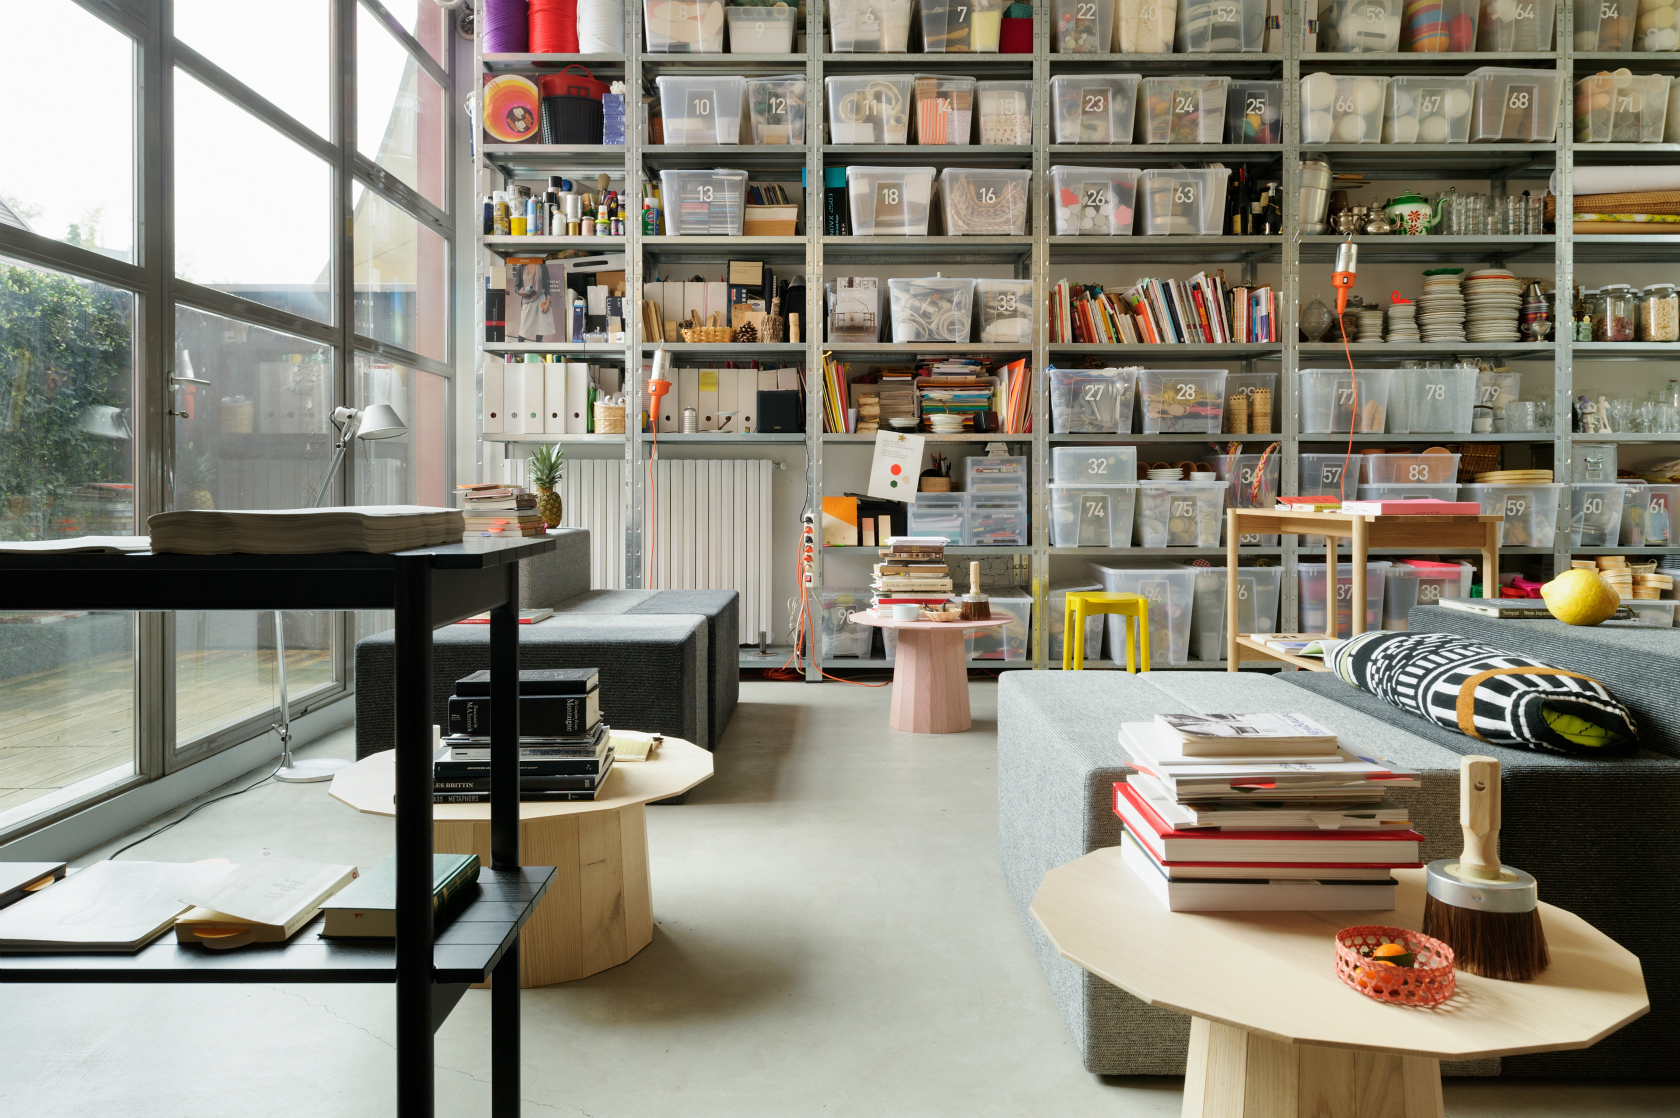 Milan 2013_Arabeschi di Latte Studio_KITCHEN LIBRARY_2